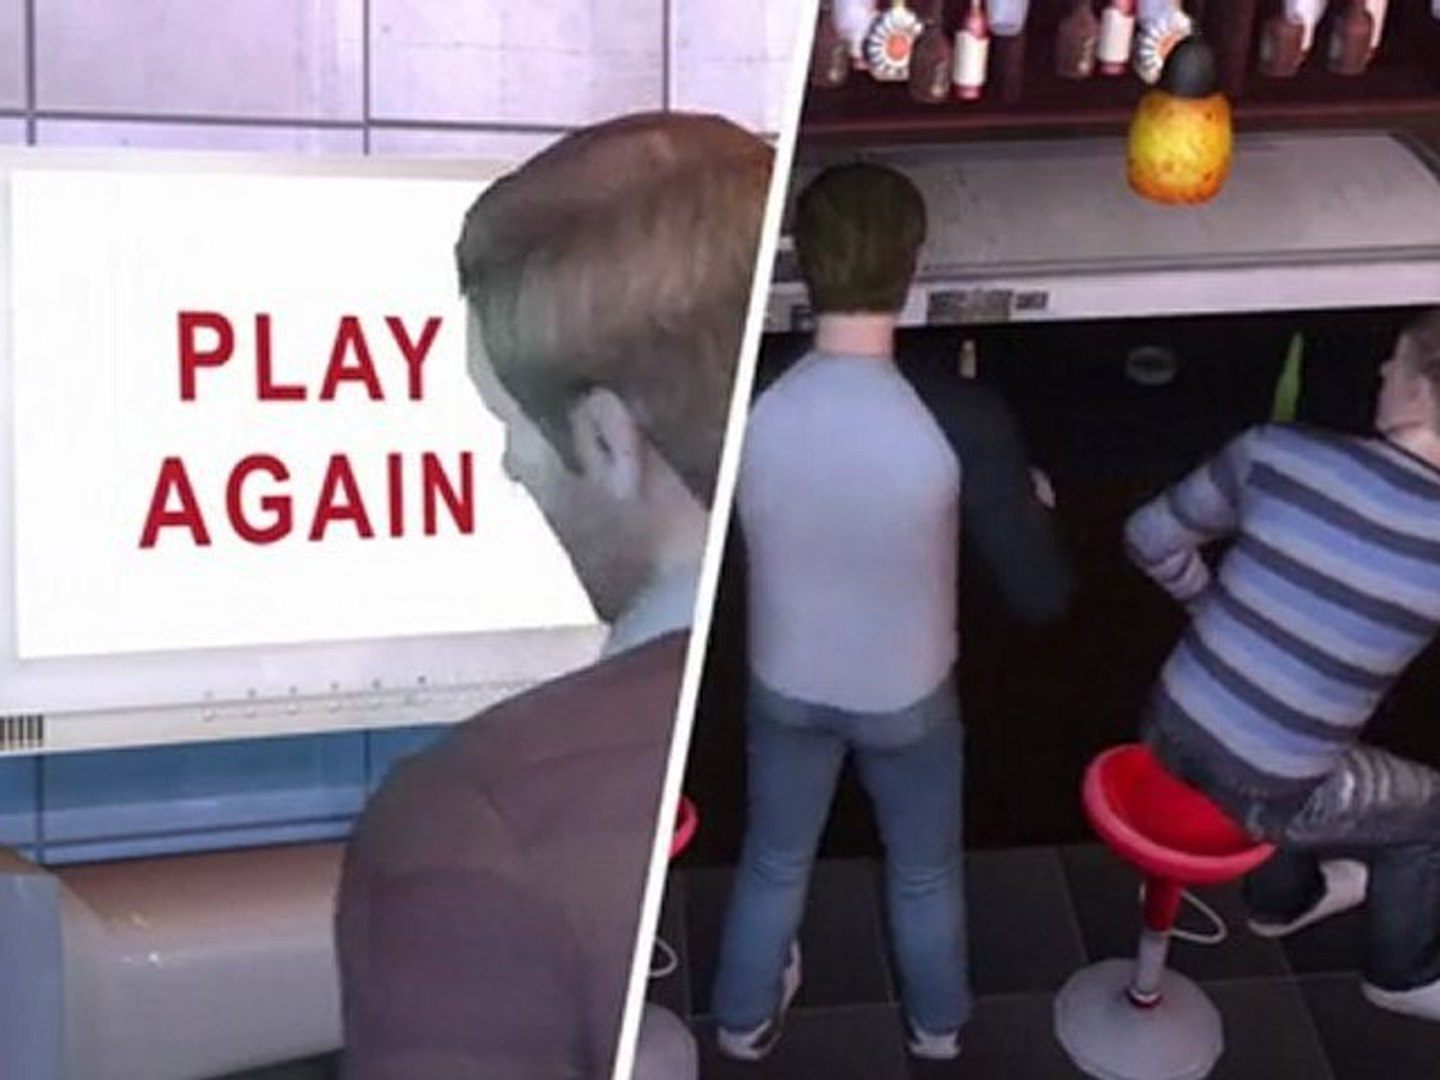 Urine-controlled video games in the UK and Japan